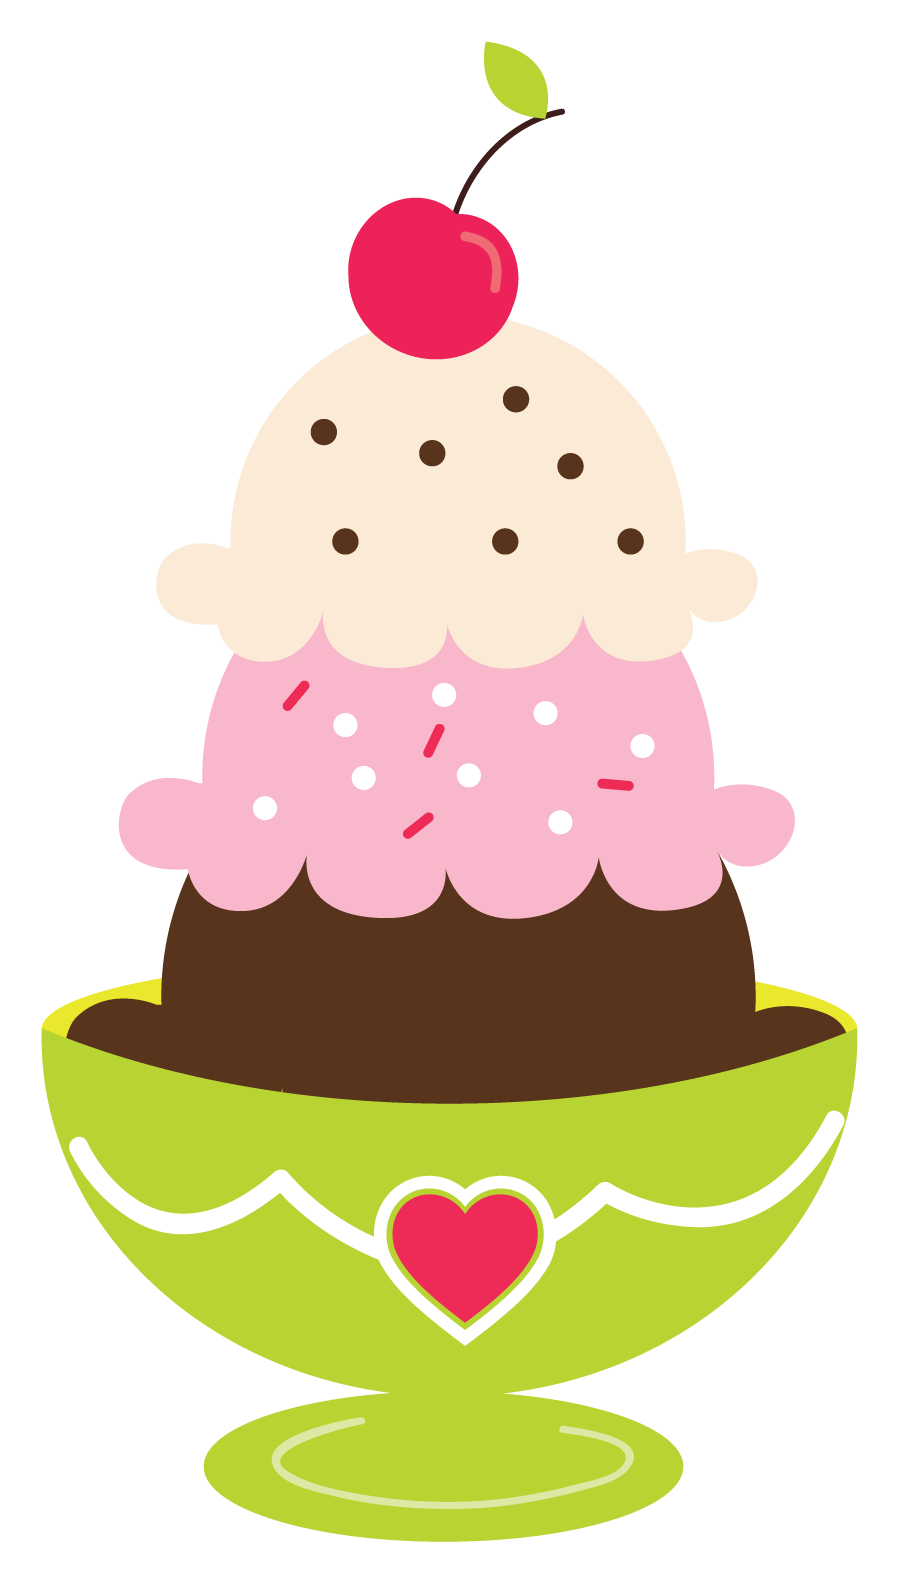 Ice cream sundae printables. Hearts clipart cupcake